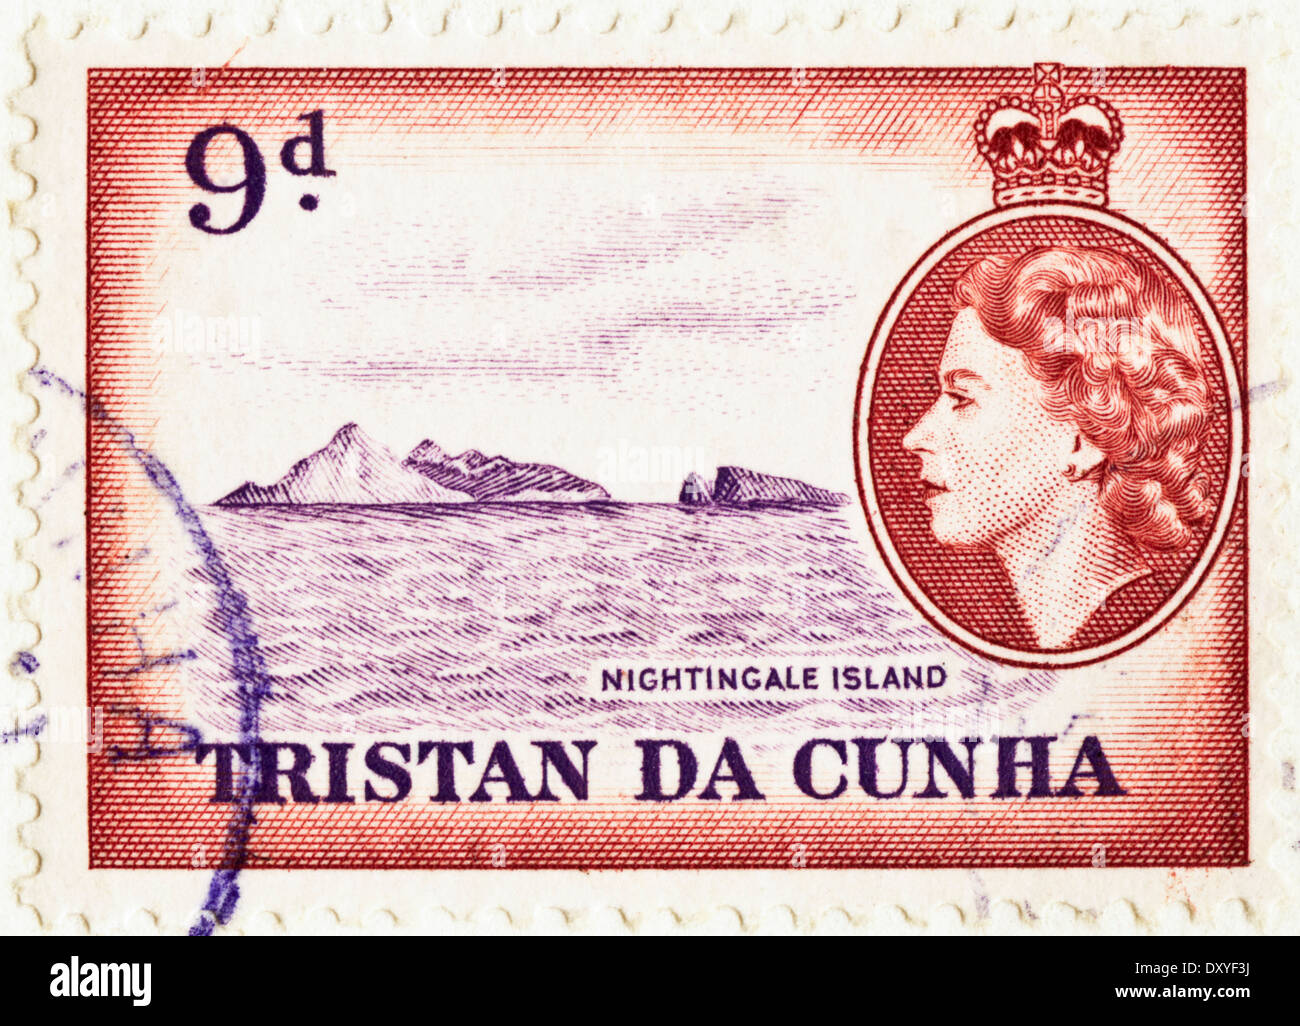 postage stamp 9d Tristan Da Cunha with Queen Elizabeth II featuring Nightingale Island circa 1956 - Stock Image